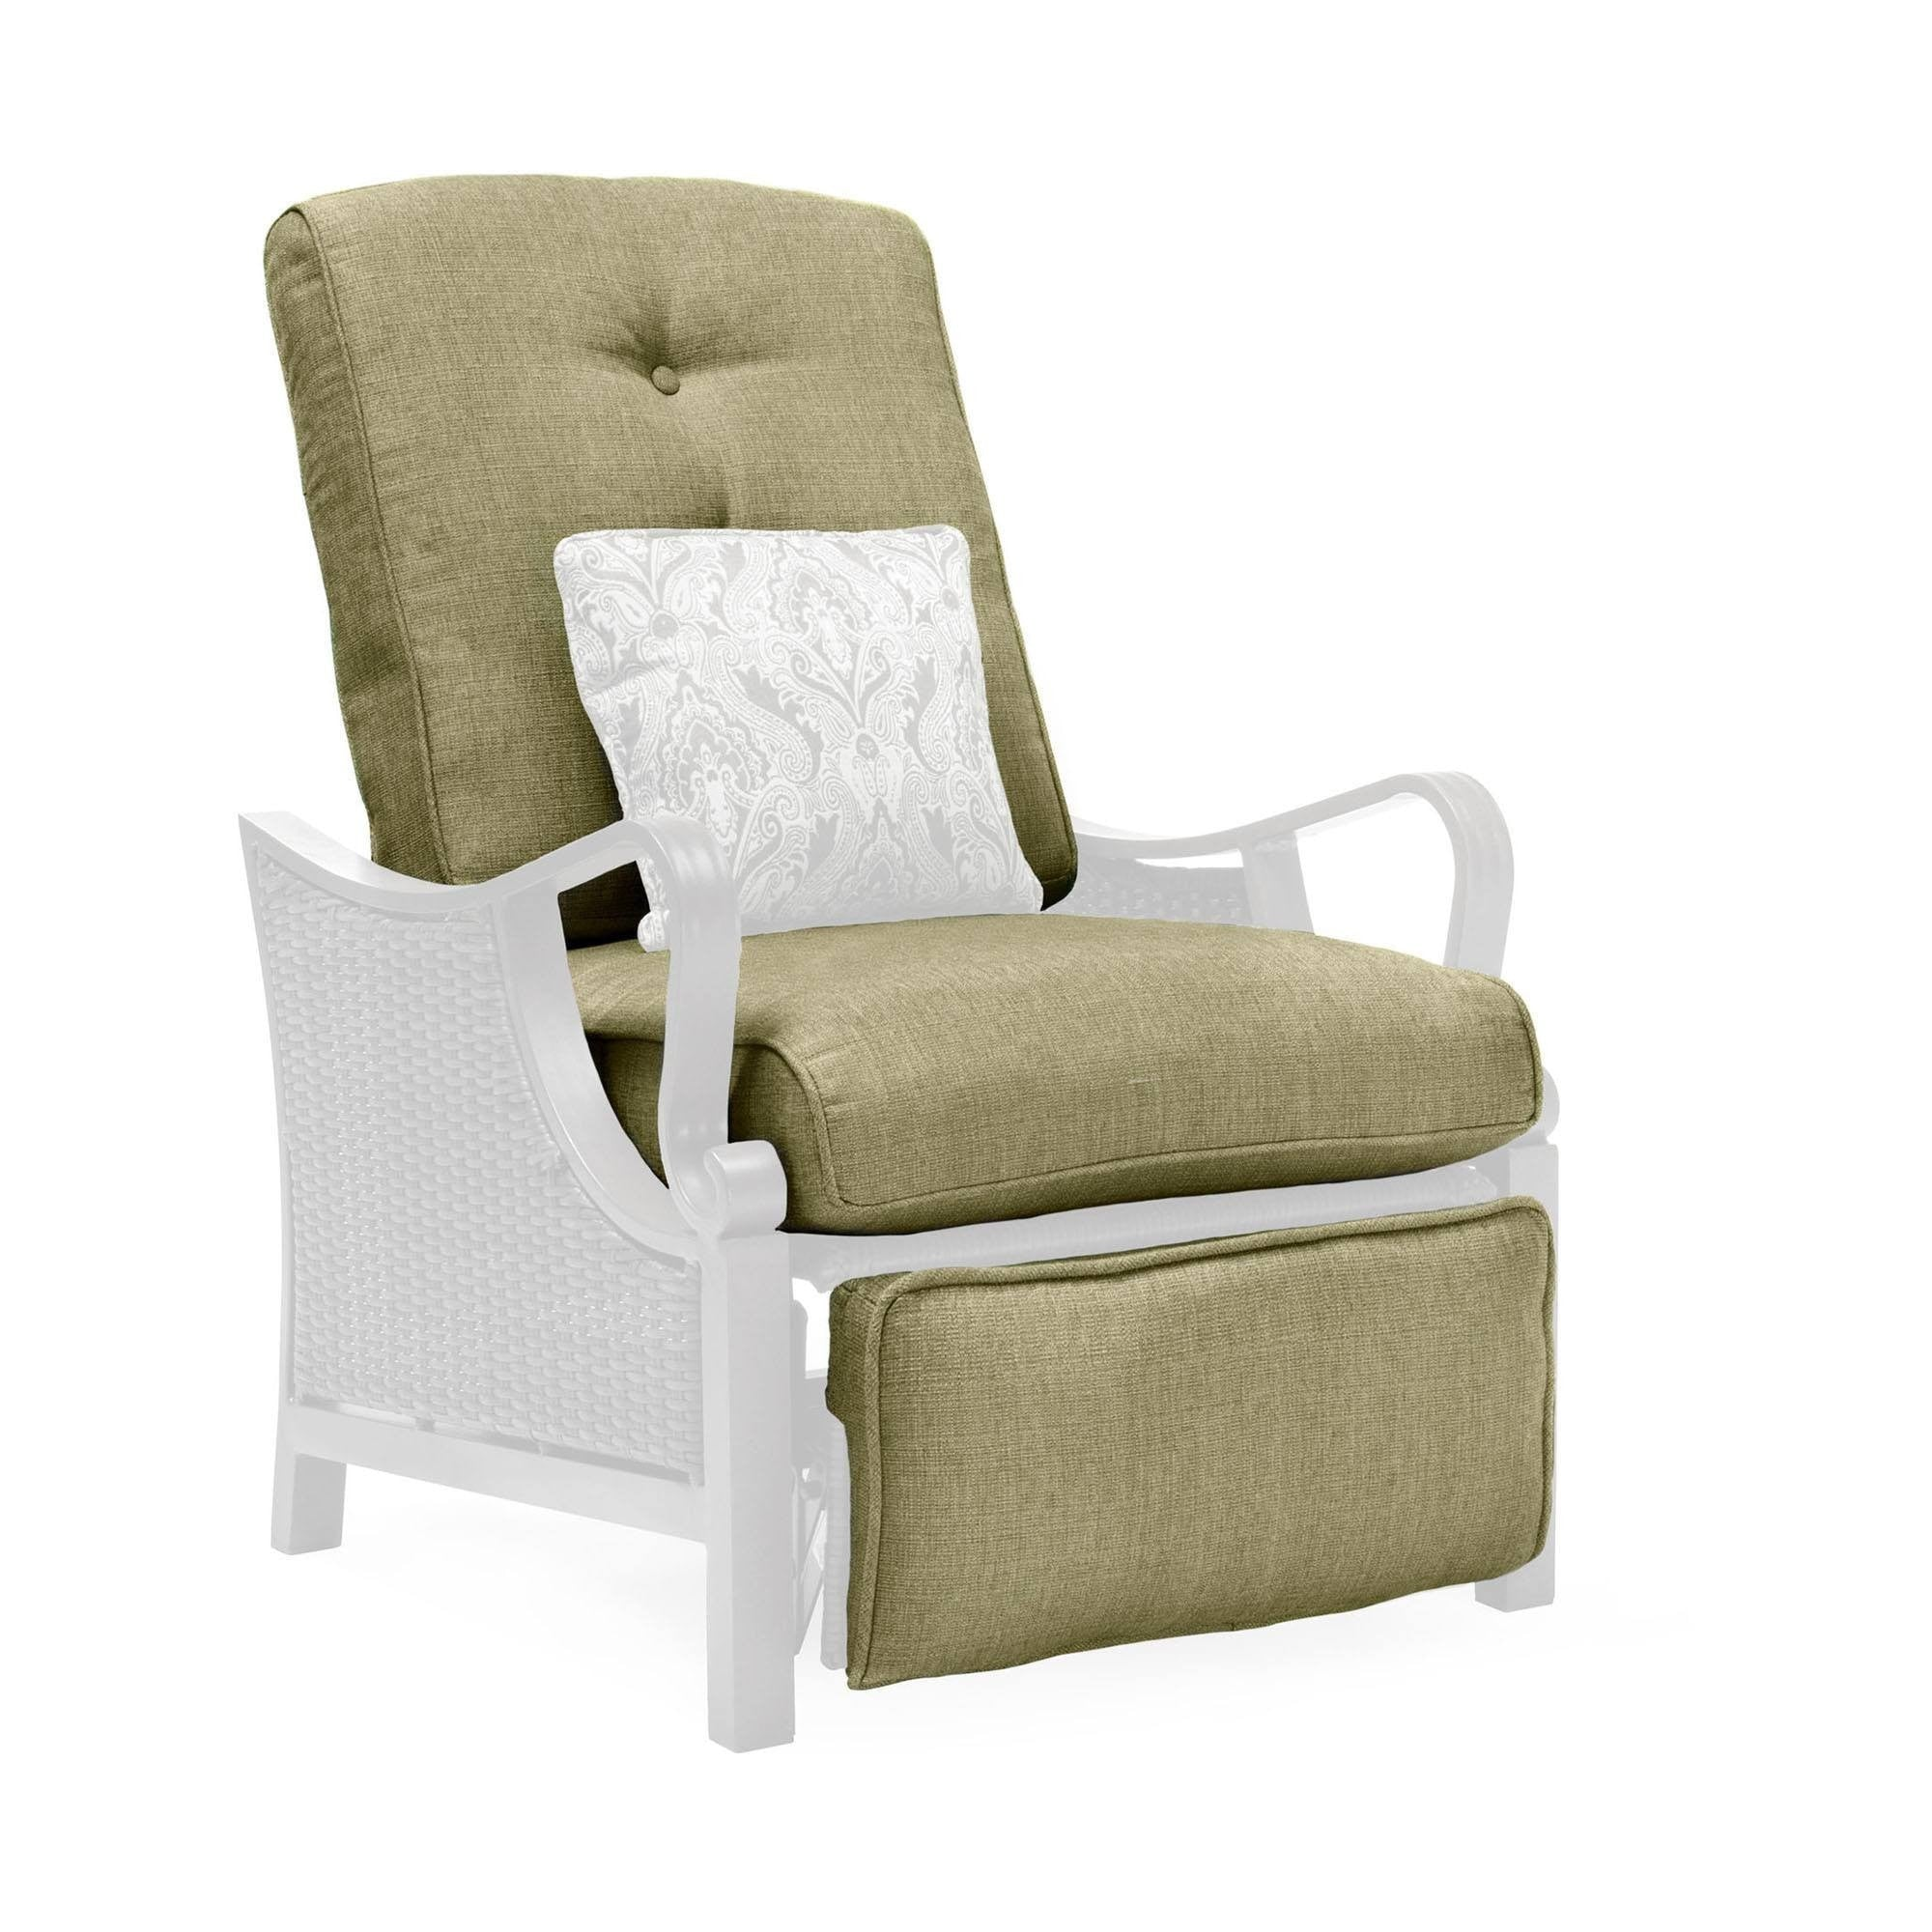 Replacement Cushions For Lazy Boy Whitley Outdoor Furniture 8 5